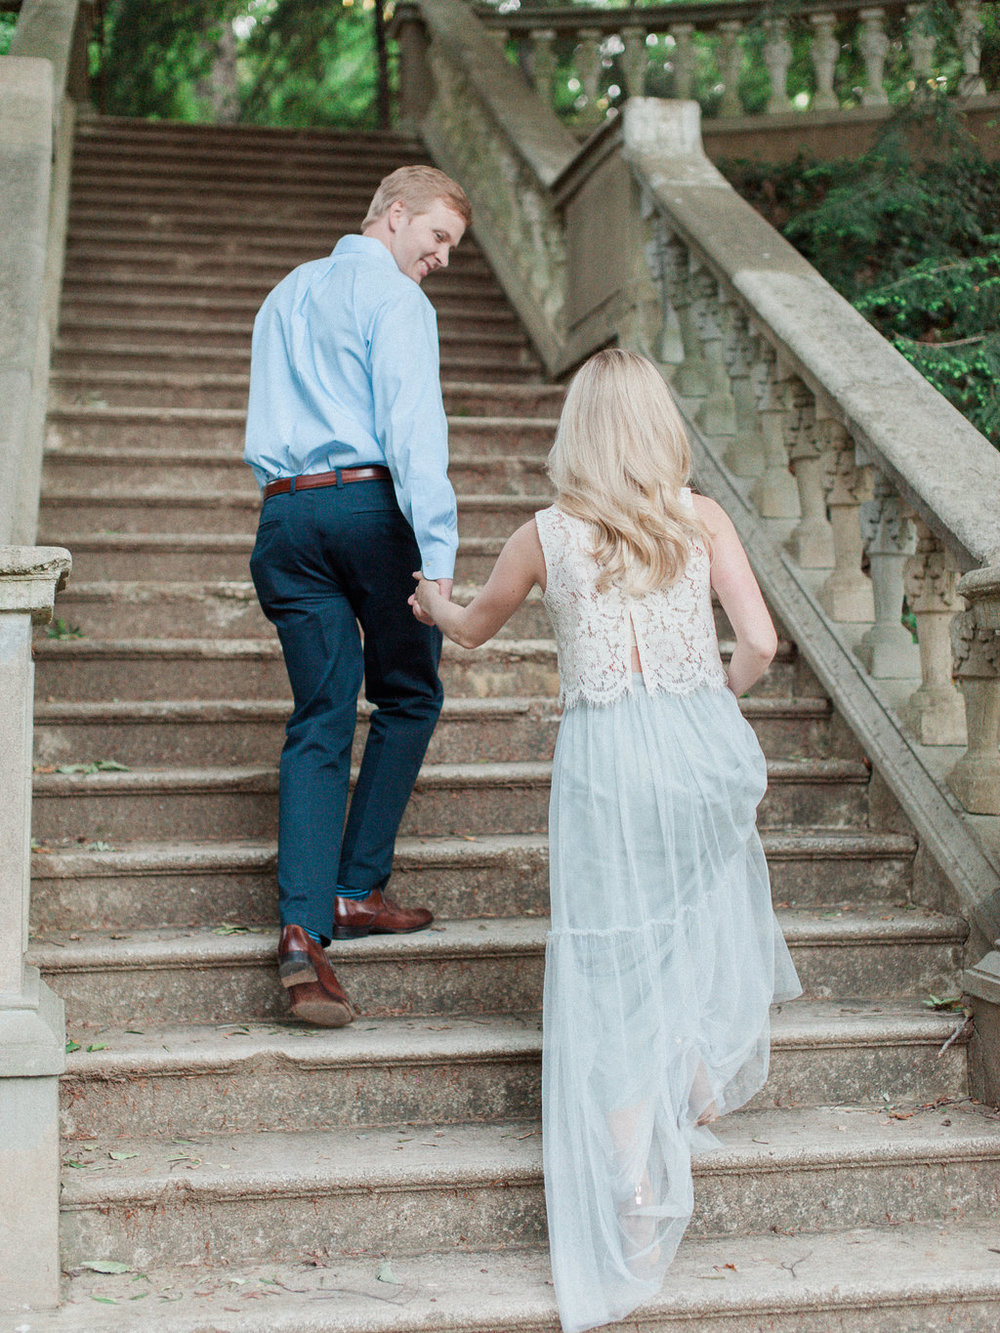 Cator-Woolford-Gardens-Engagement-atlanta-wedding-photographer-hannah-forsberg-12.jpg